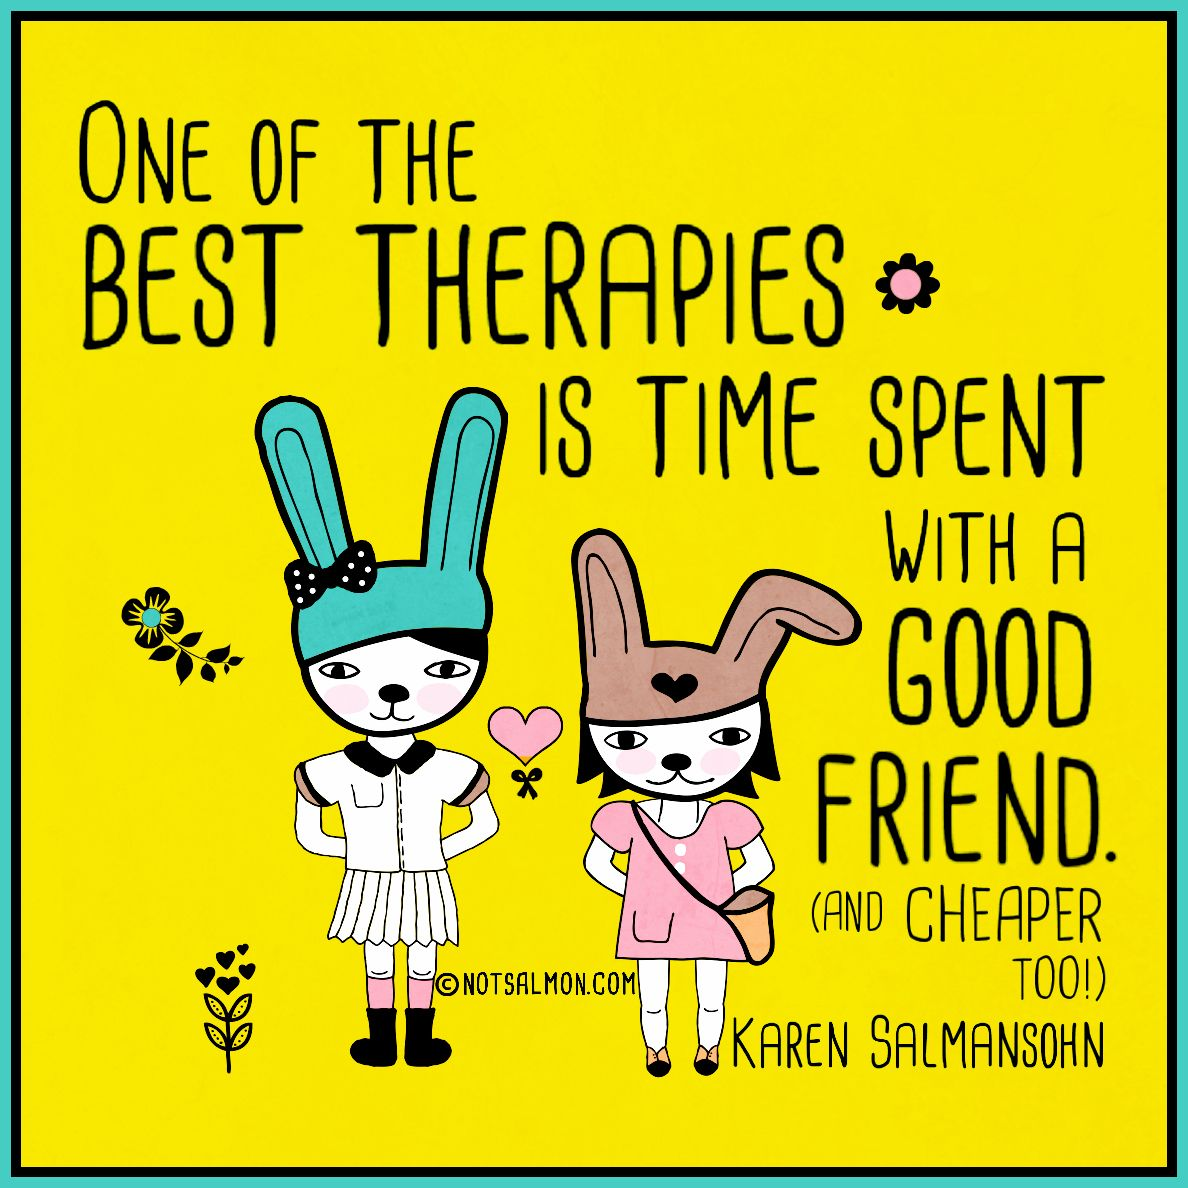 e of the best therapies is time spent with a good friend